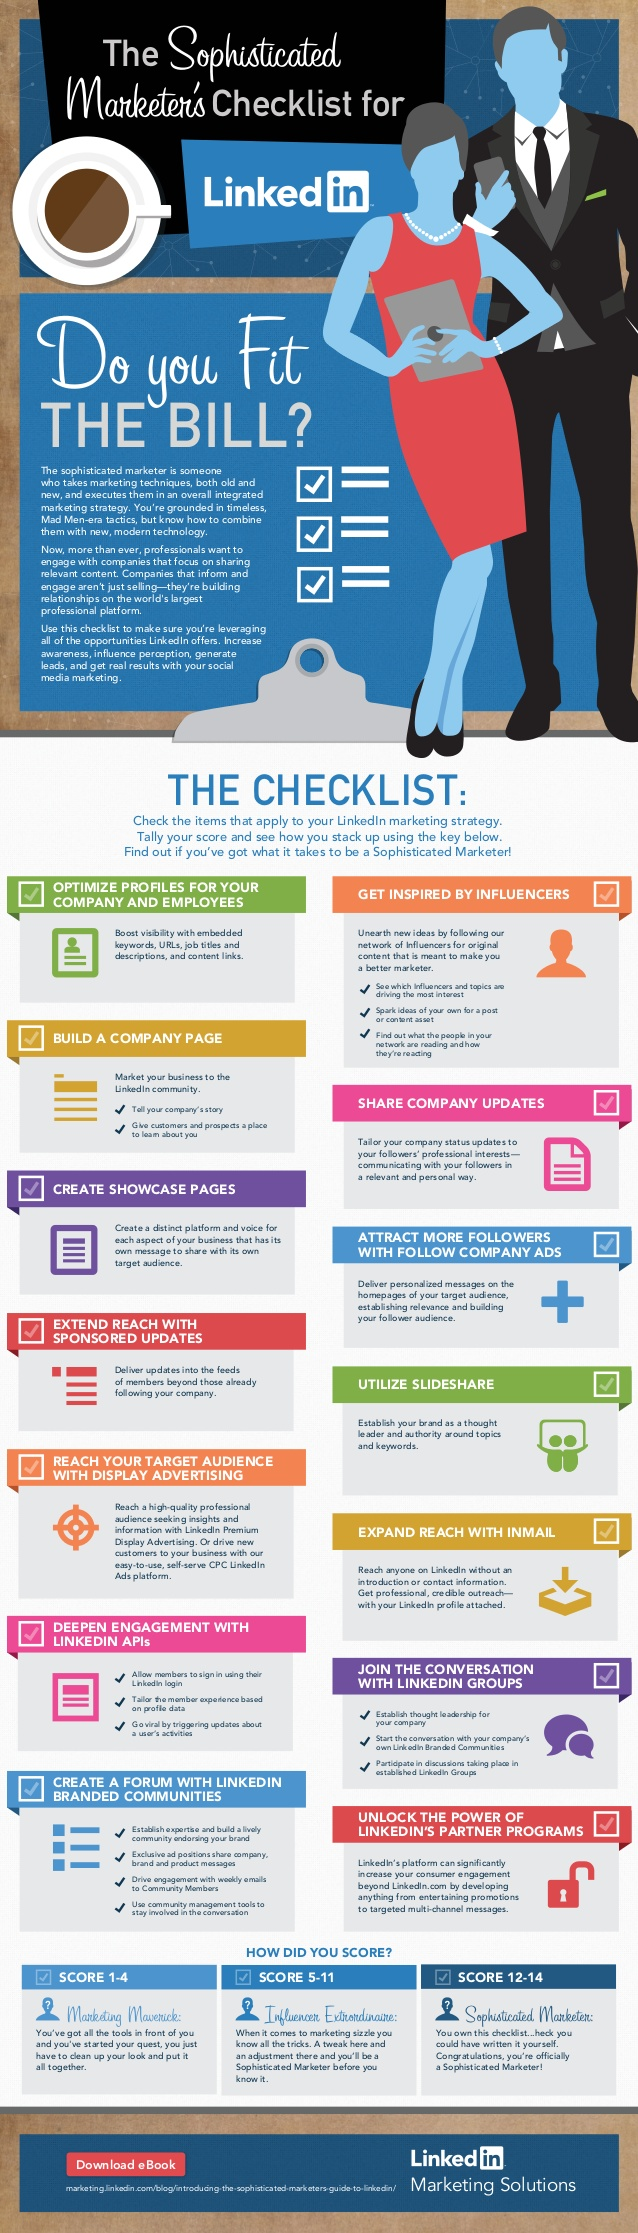 Infographic showing LinkedIn marketing tips